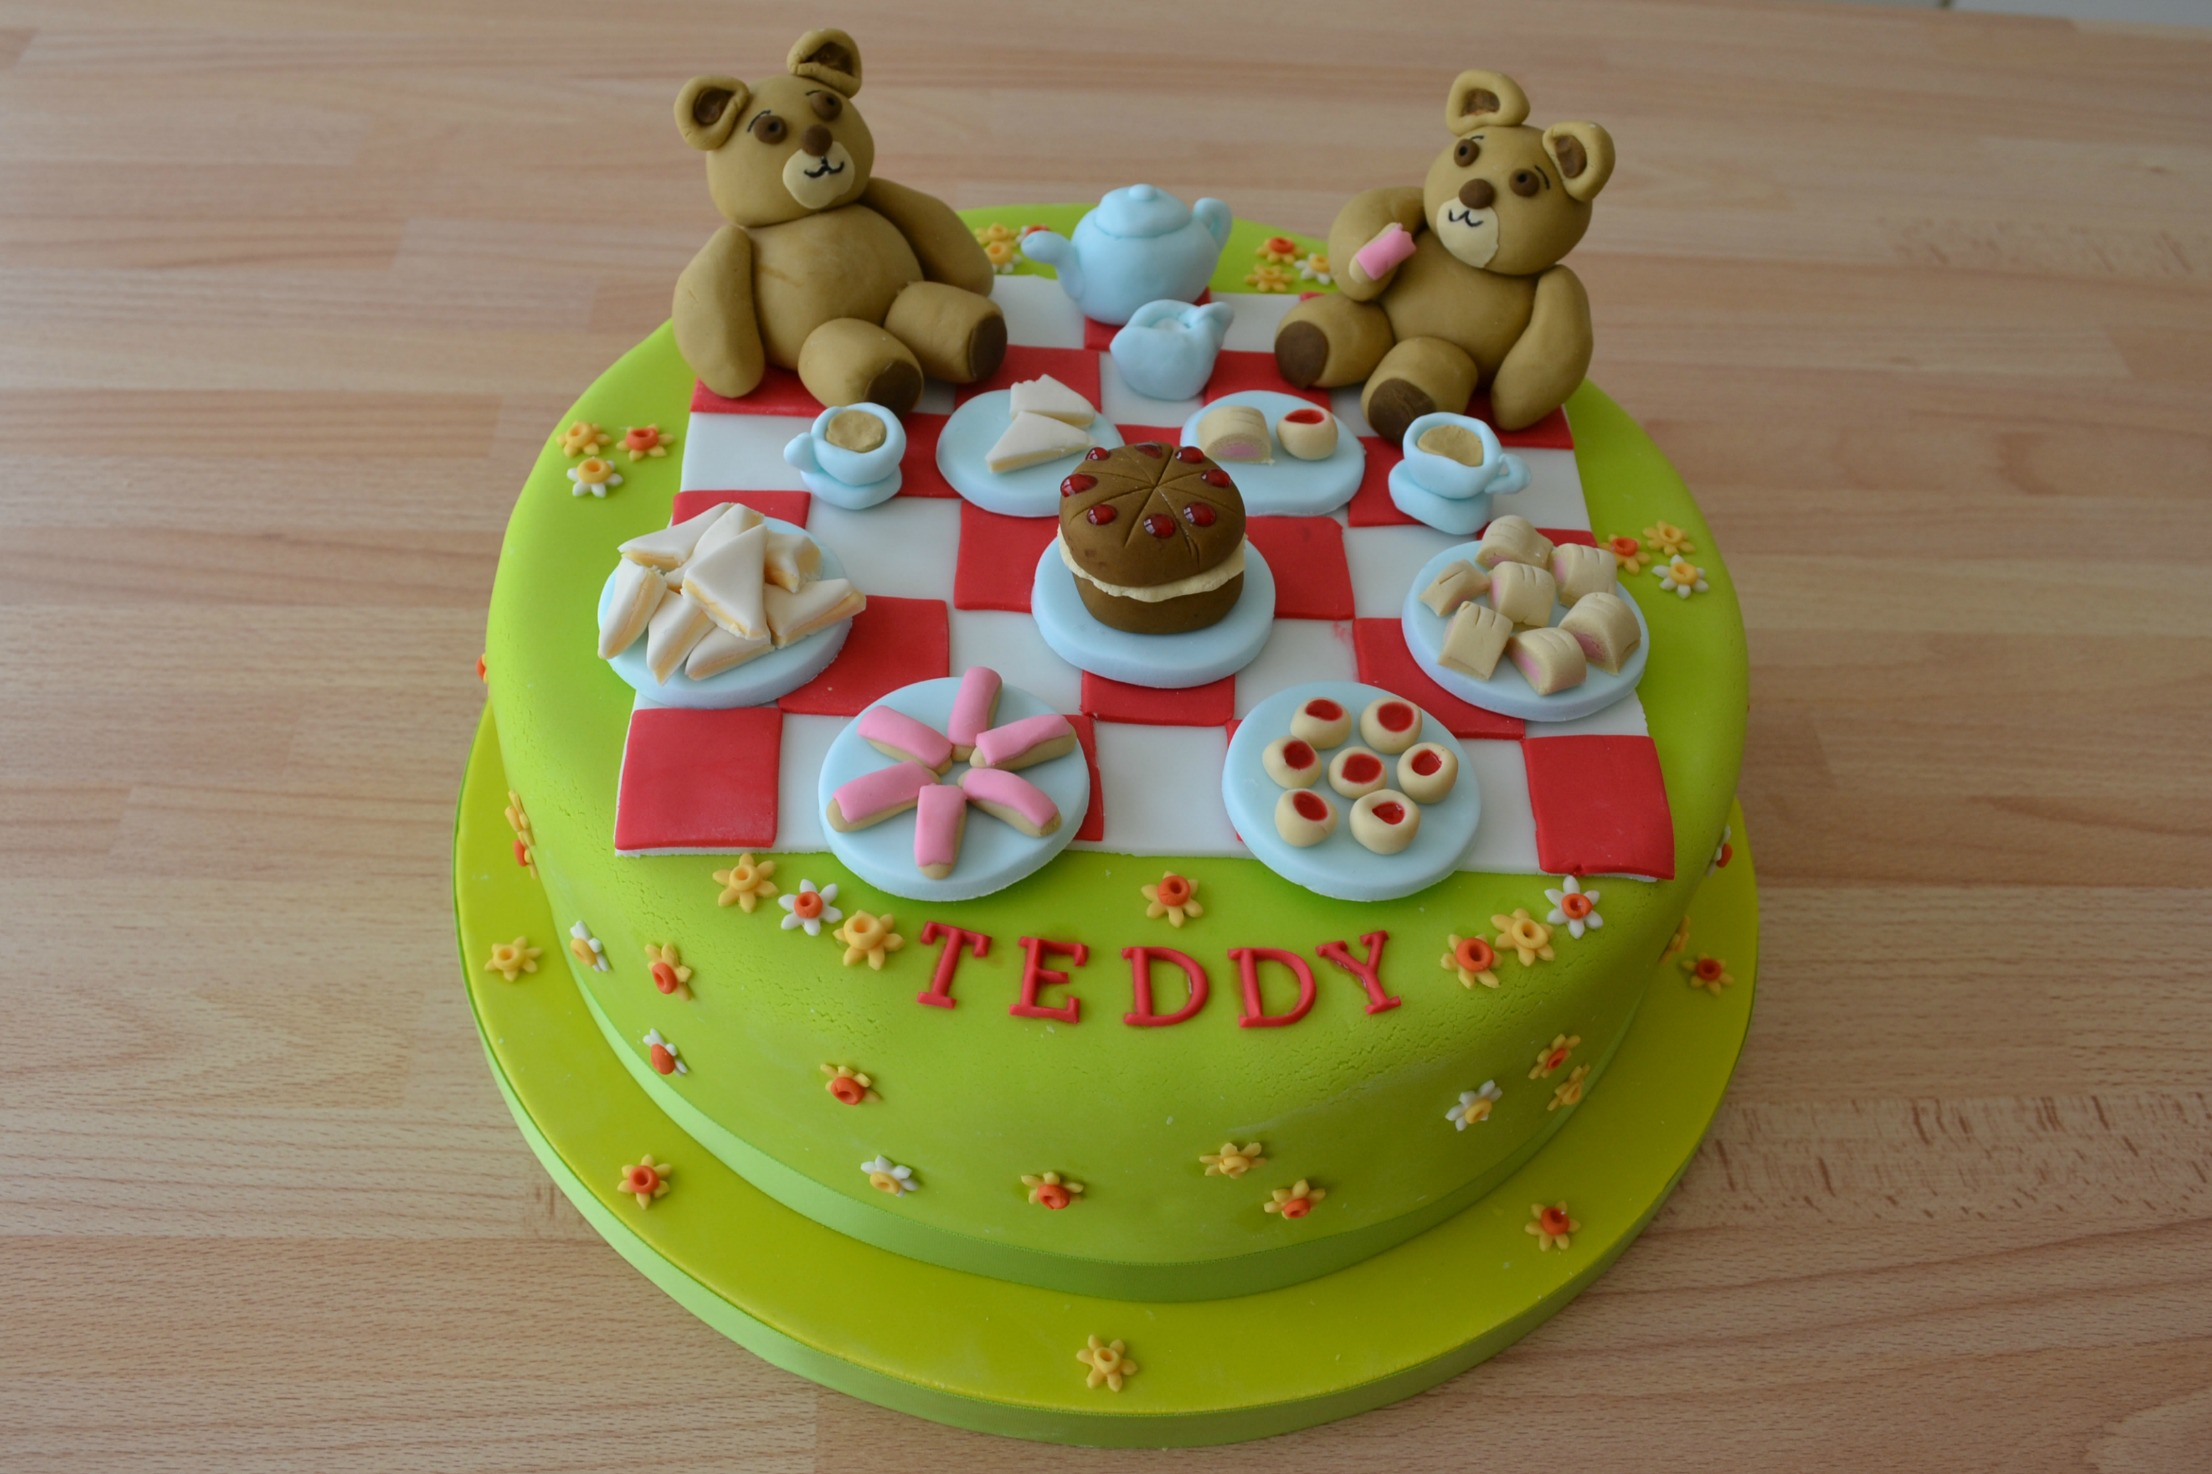 Teddy Bear's Picnic Cake The Great British Bake Off - Bear Decorations For Home